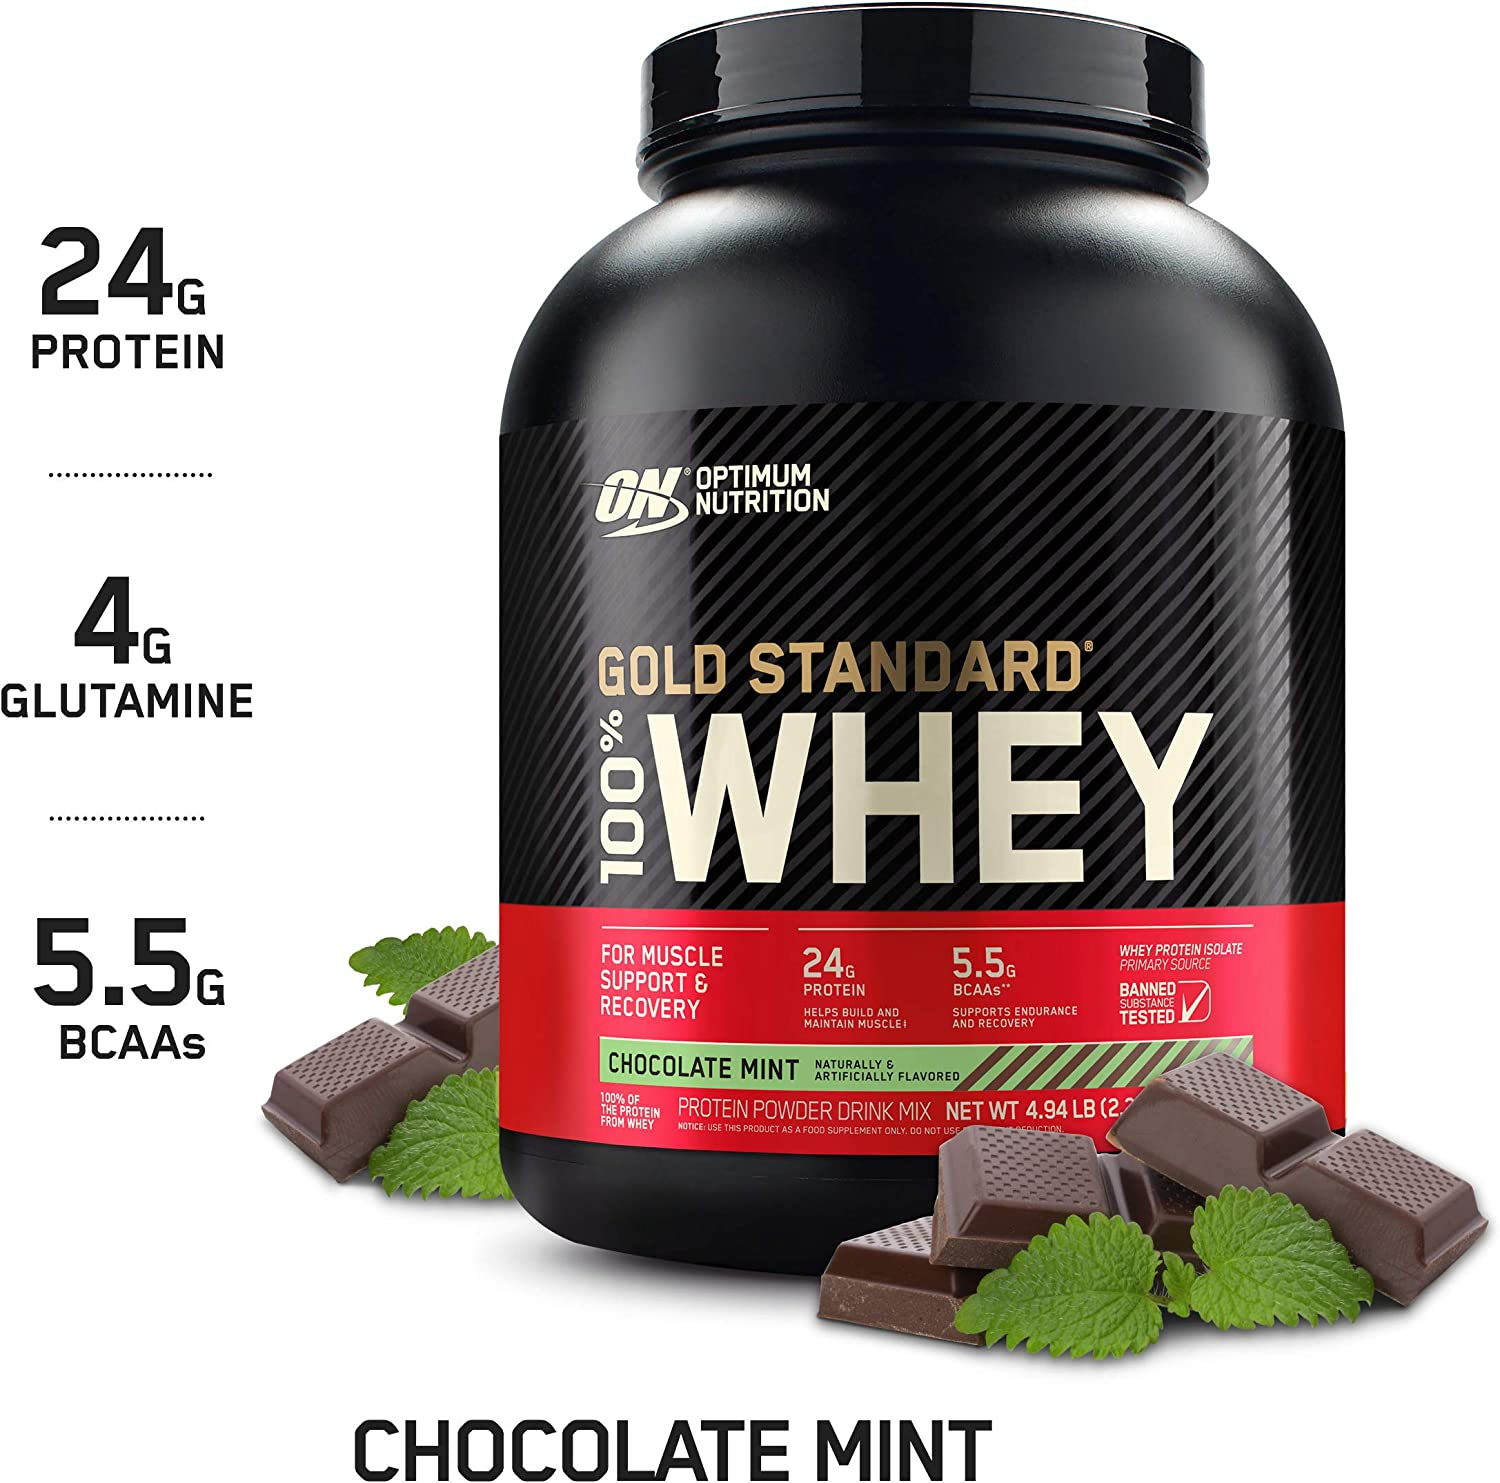 Optimum Nutrition Gold Standard Whey Protein Powder review